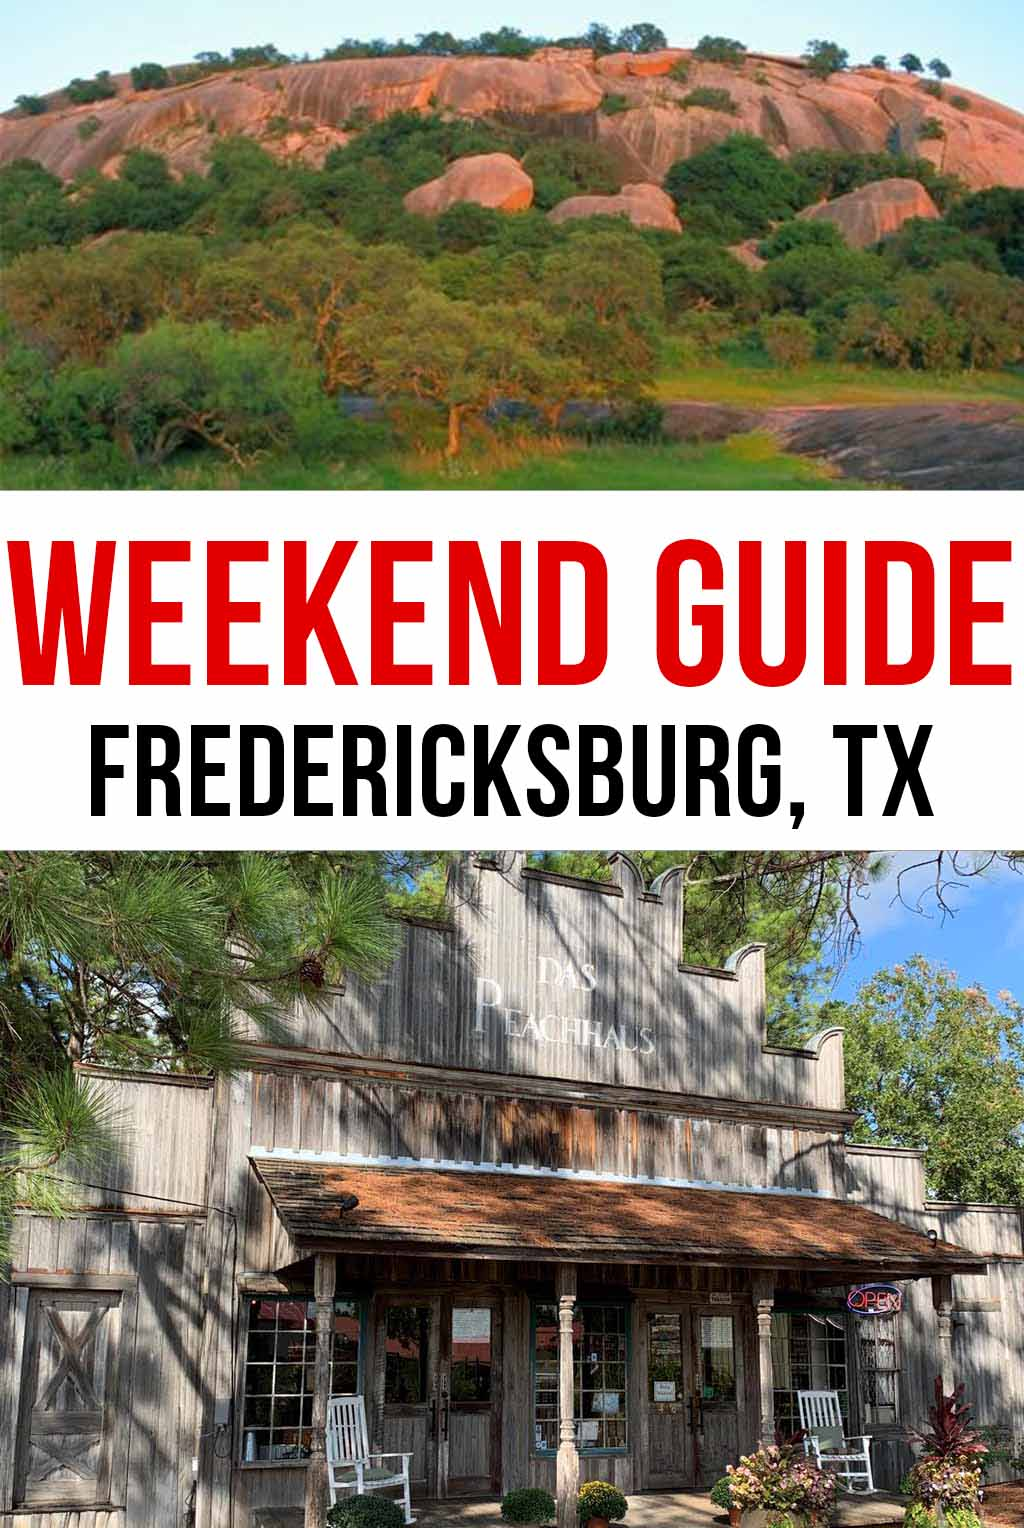 Weekend Guide to Fredericksburg, TX